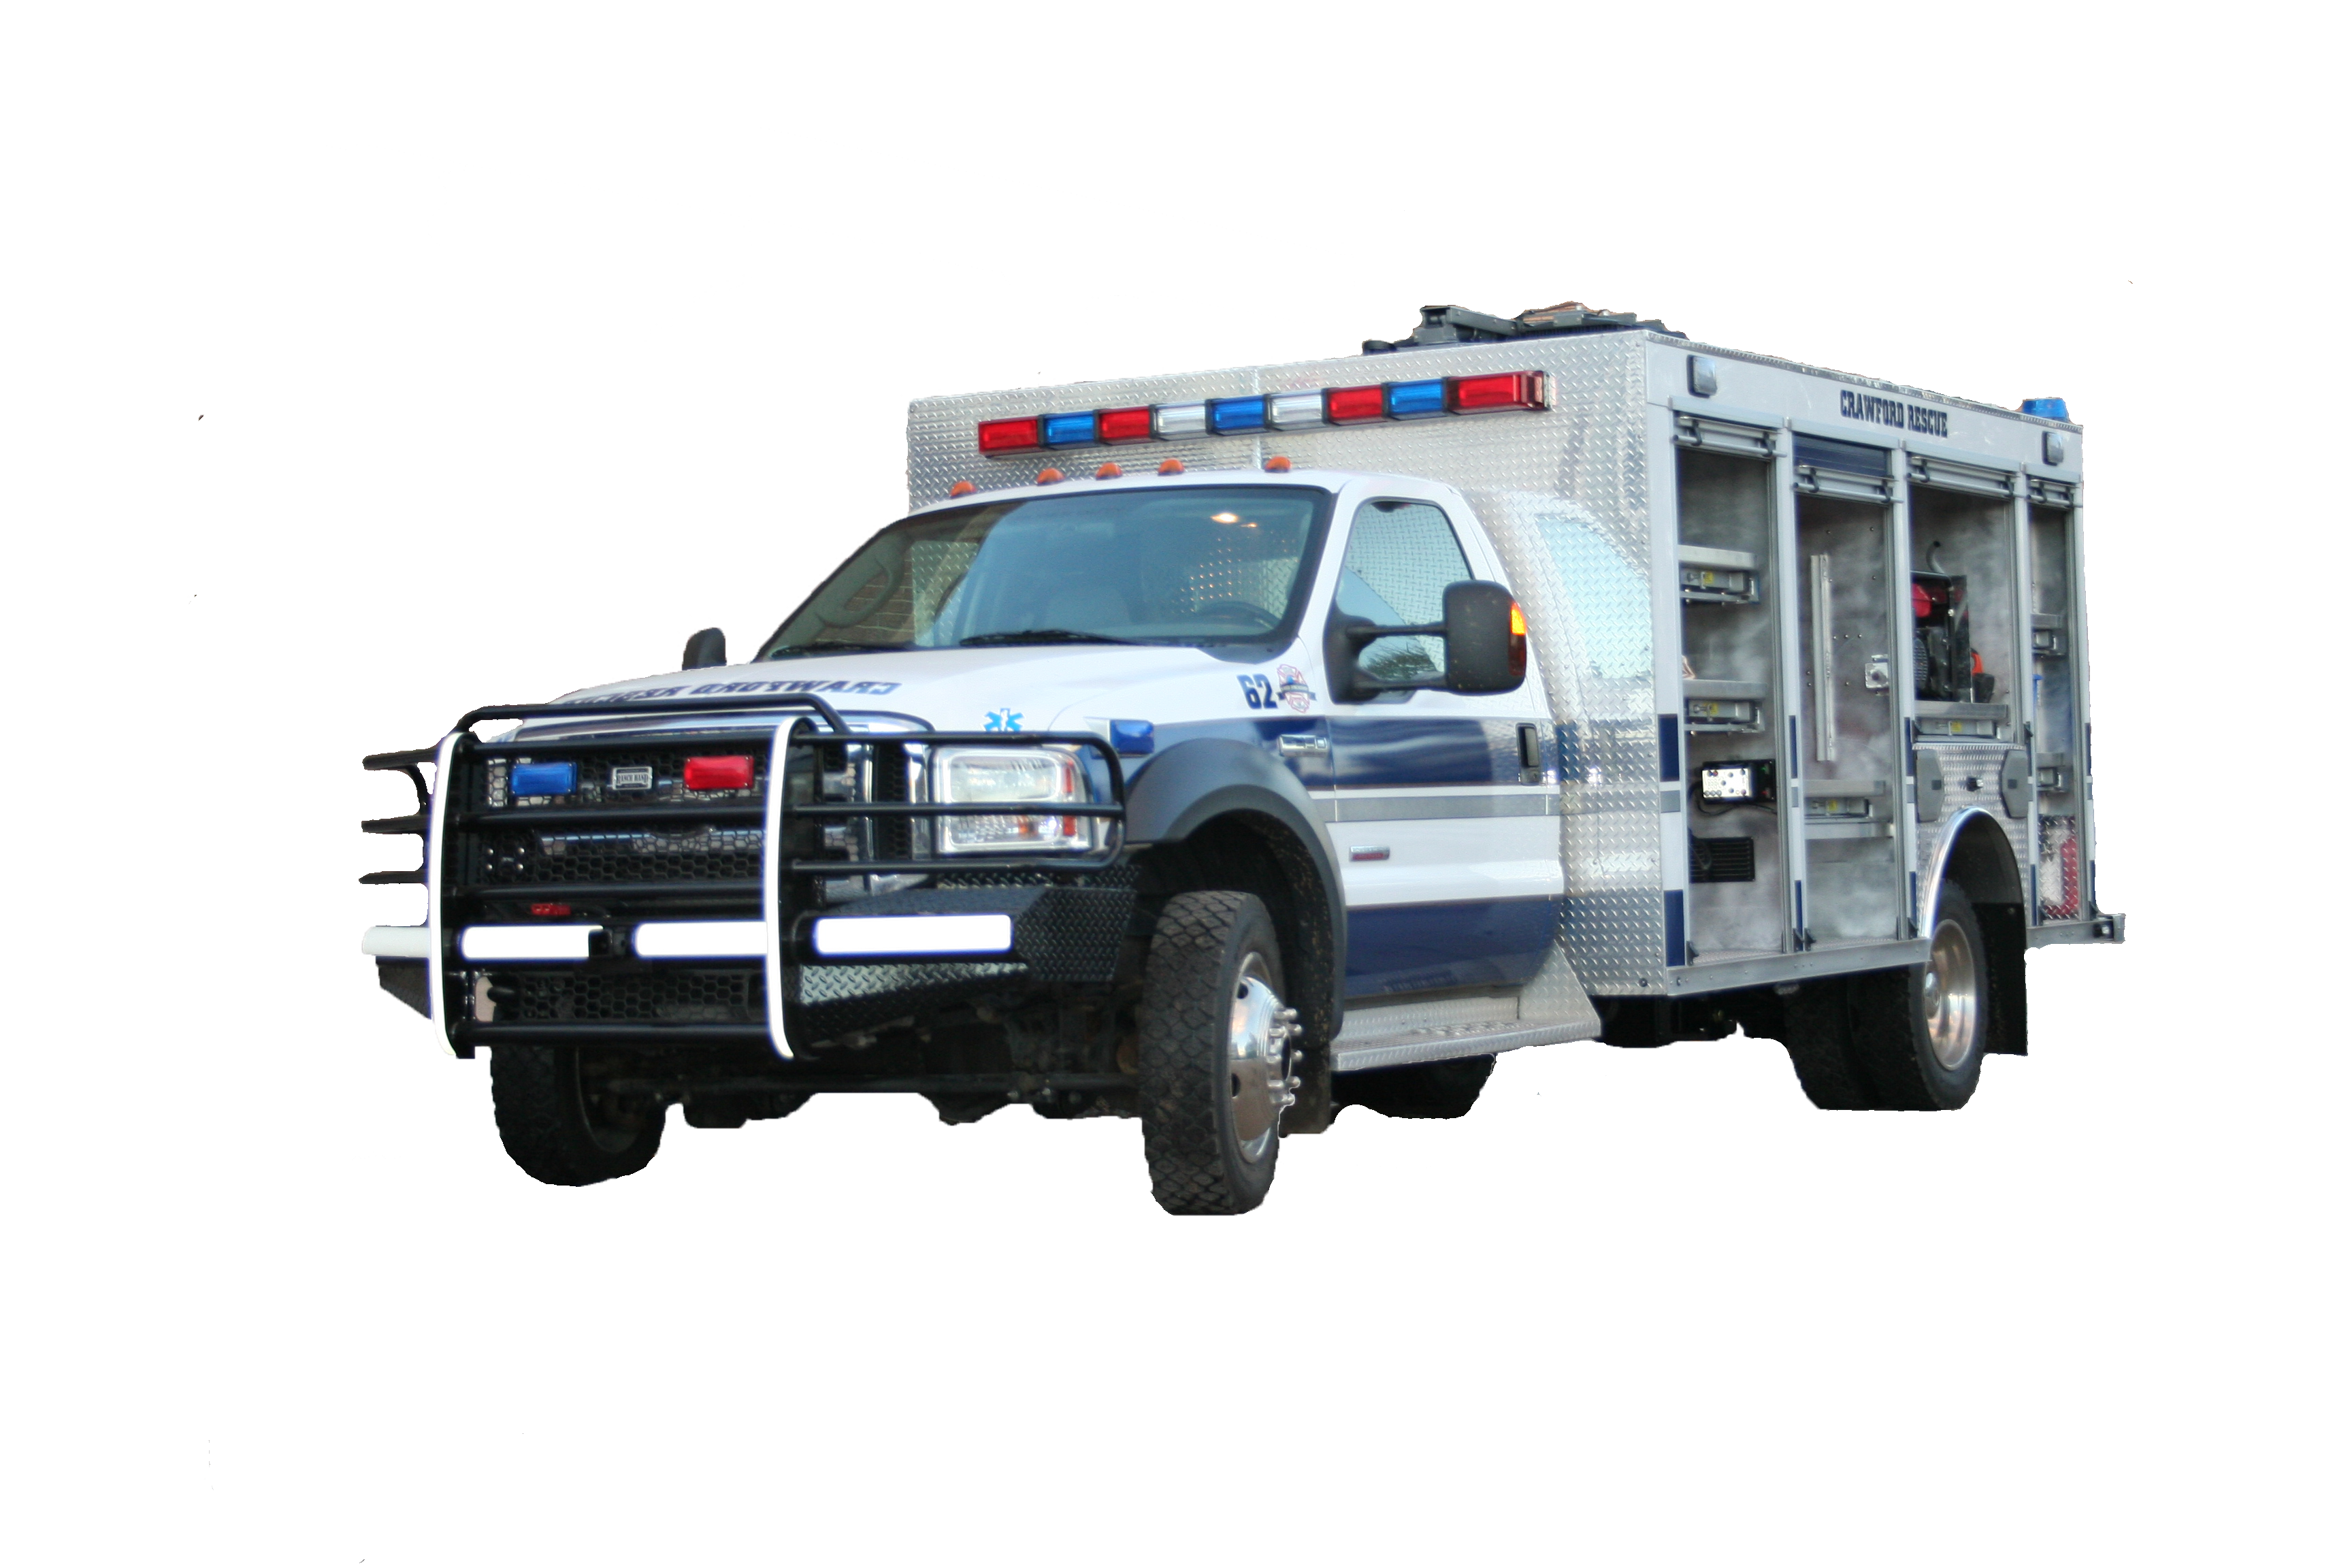 crawford-rescue-truck-clipped.png